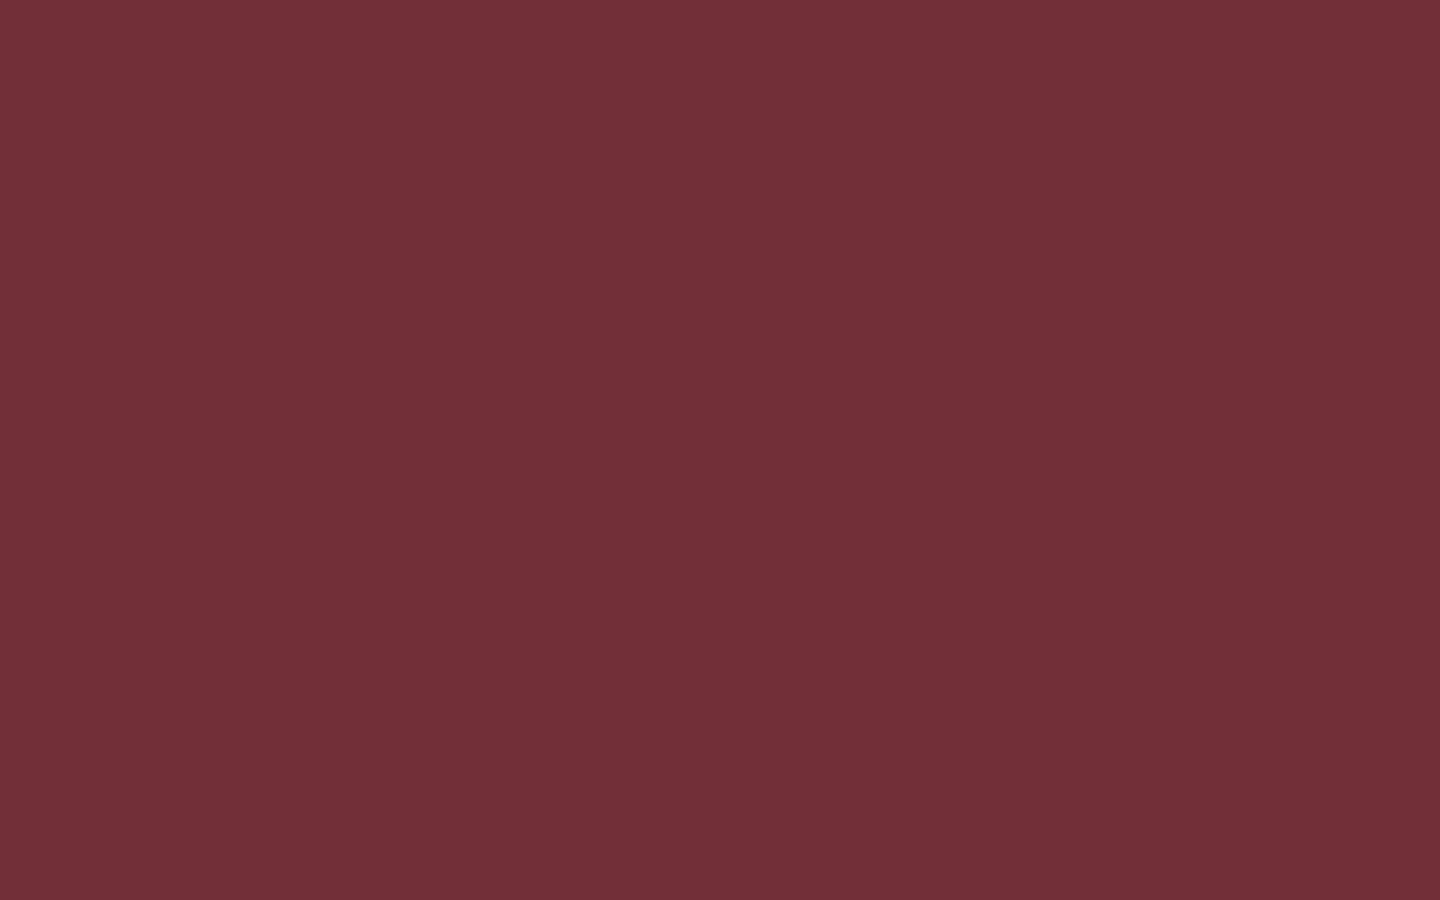 1440x900 Wine Solid Color Background